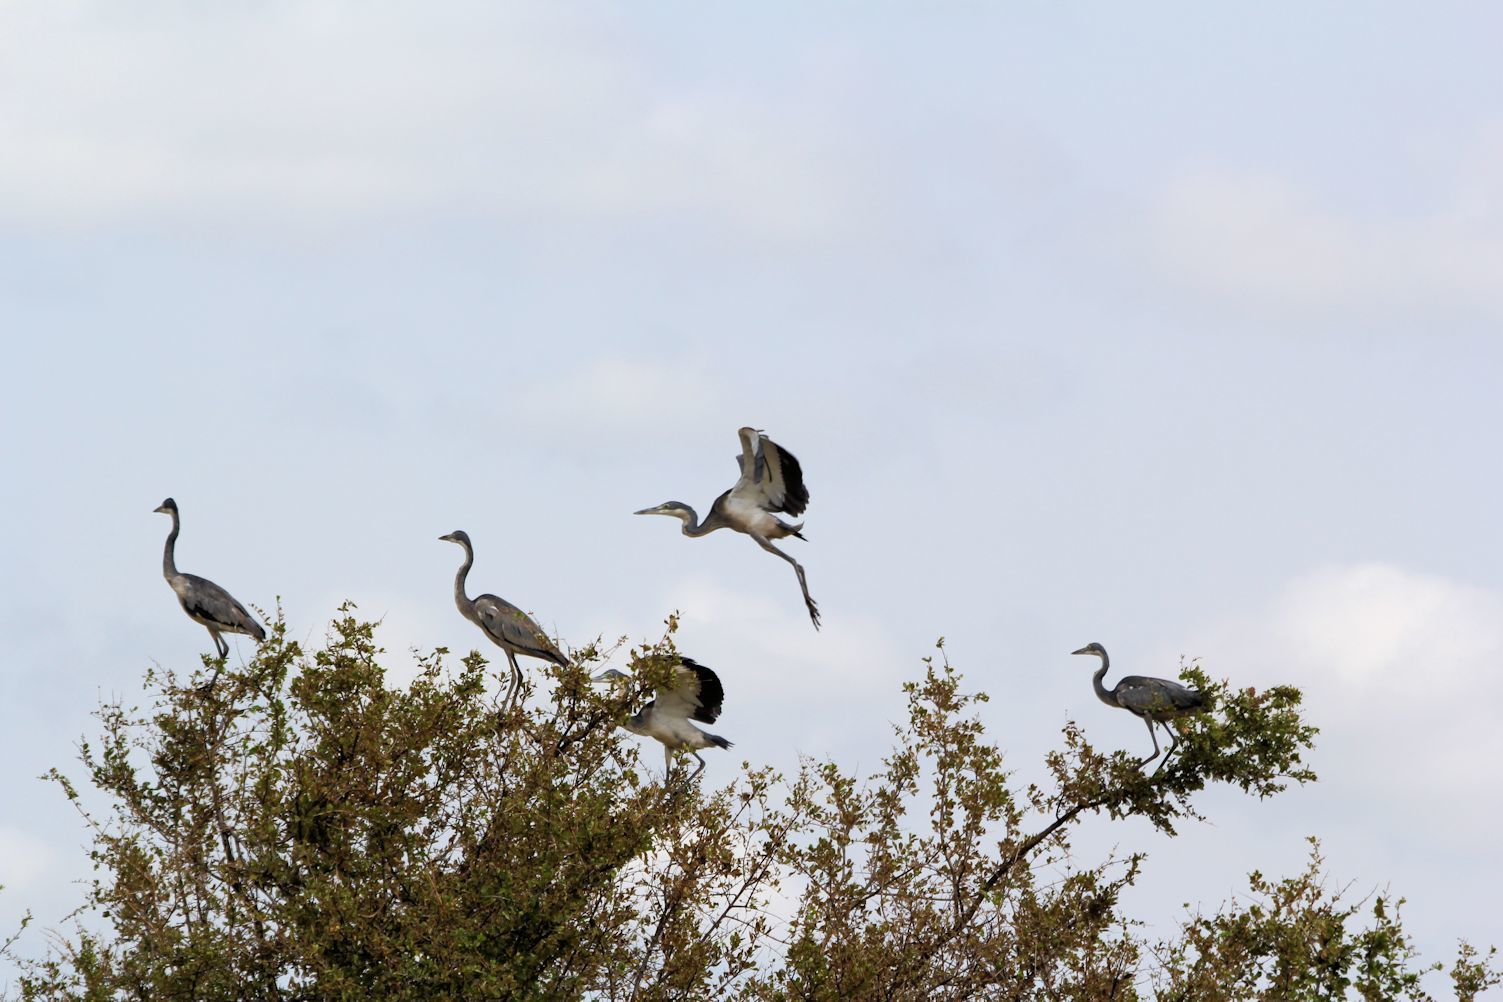 Herons on the trees